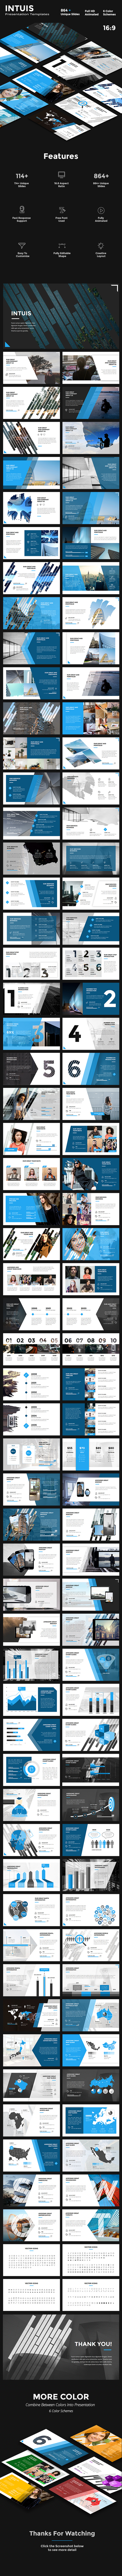 GraphicRiver Intuis PowerPoint 21144087